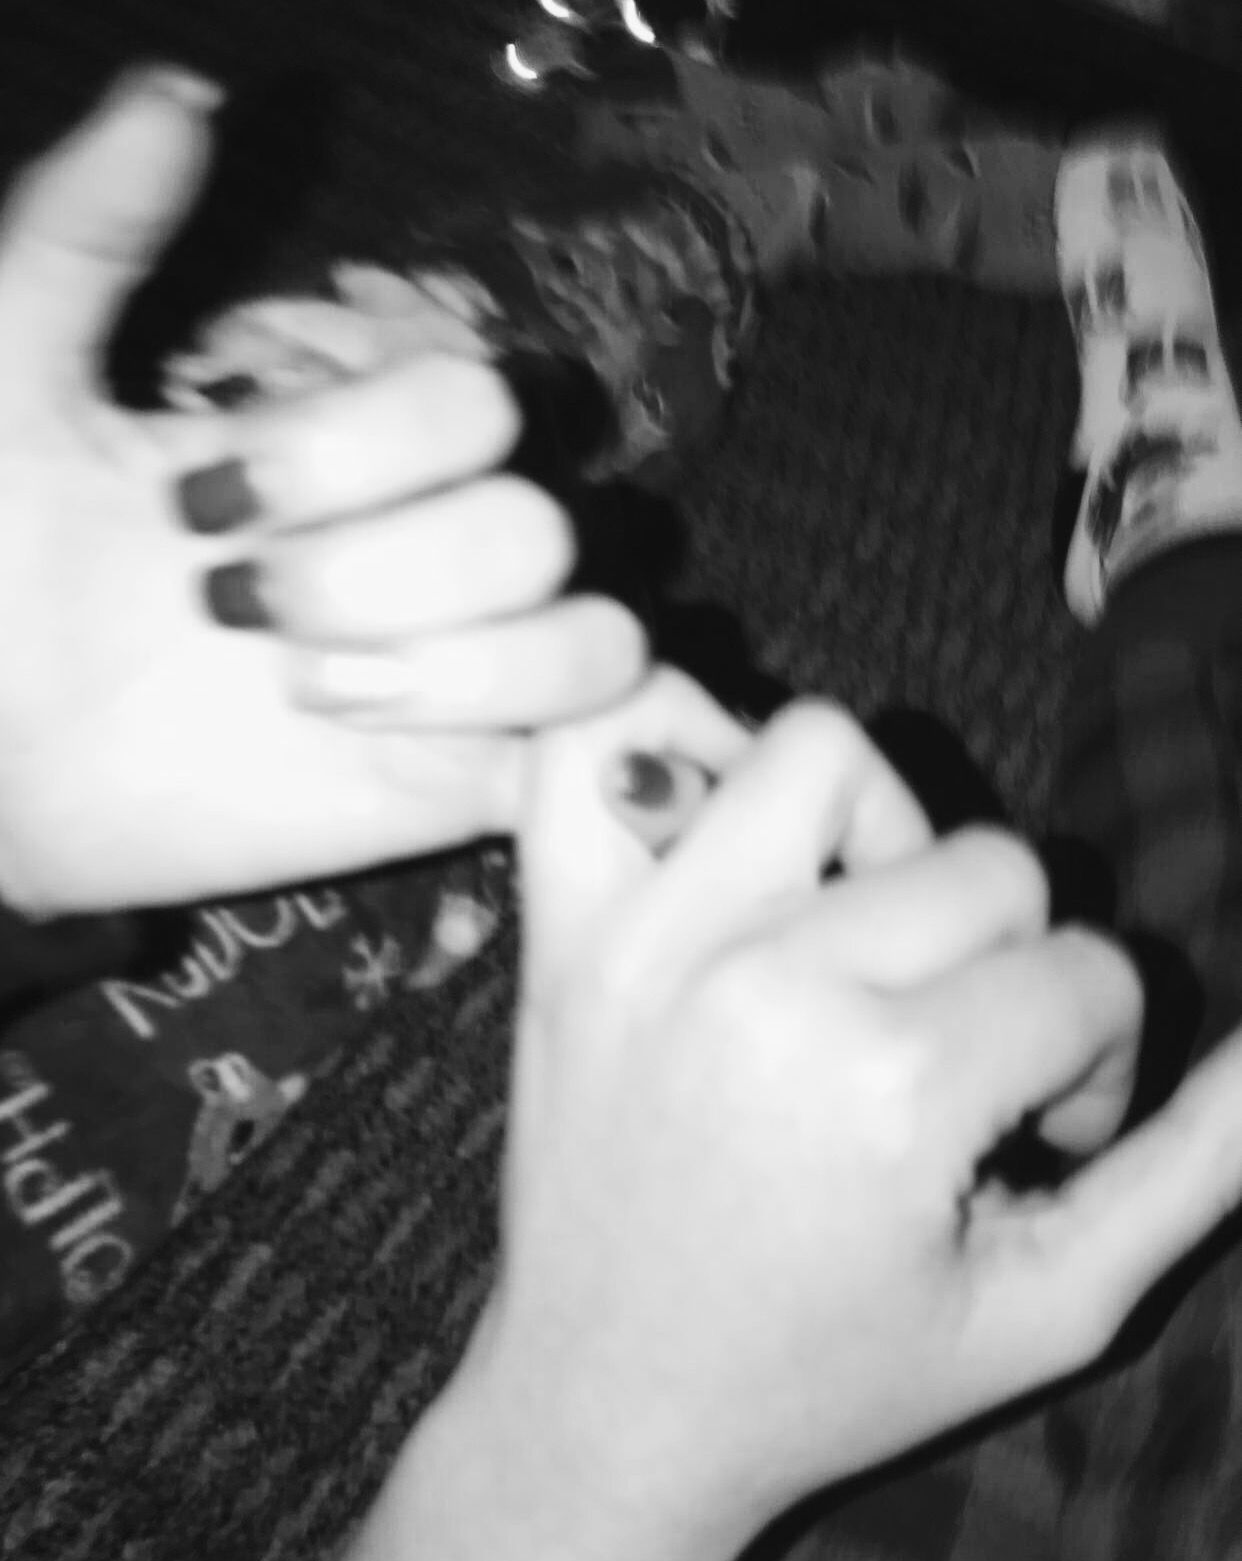 Ayyeshay Aesthetic Black White Holdinghands Hands Cute Couplegoals Black And White Picture Wall White Aesthetic Photography Black Aesthetic Wallpaper